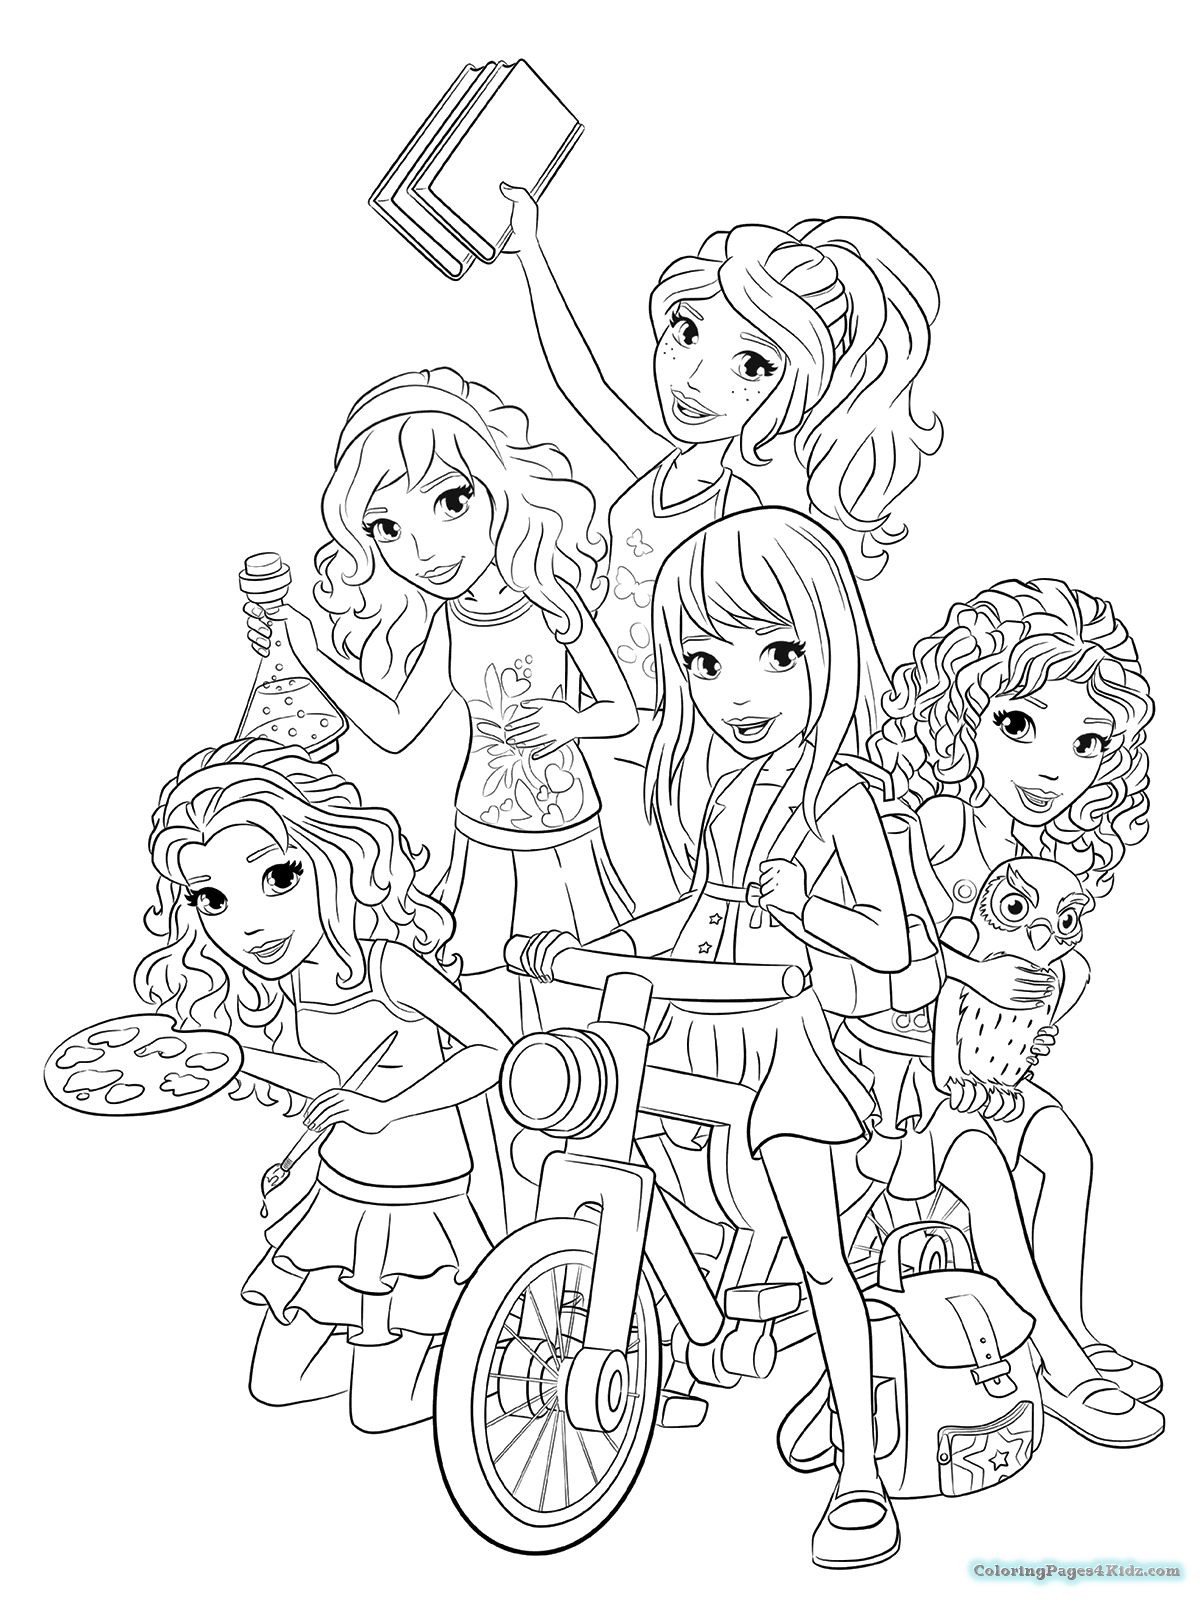 - Lego Friends Coloring Pages Childlifeme Payton Birthday (met